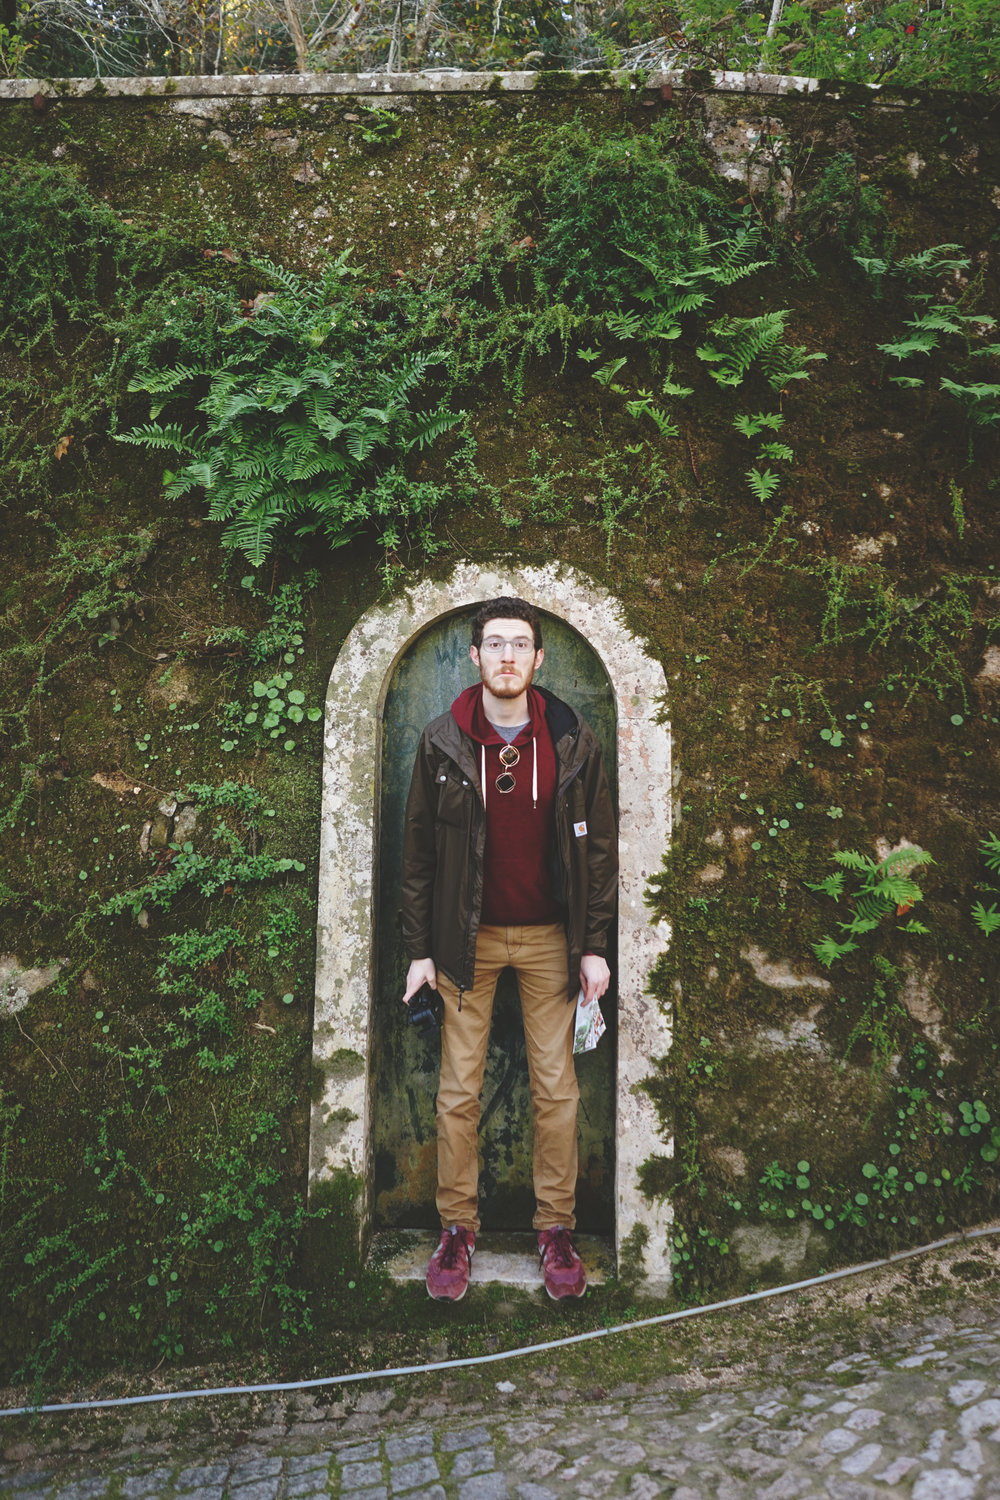 & Away We Went Travel Blog | Sintra, Portugal | Quinta da Regaleira